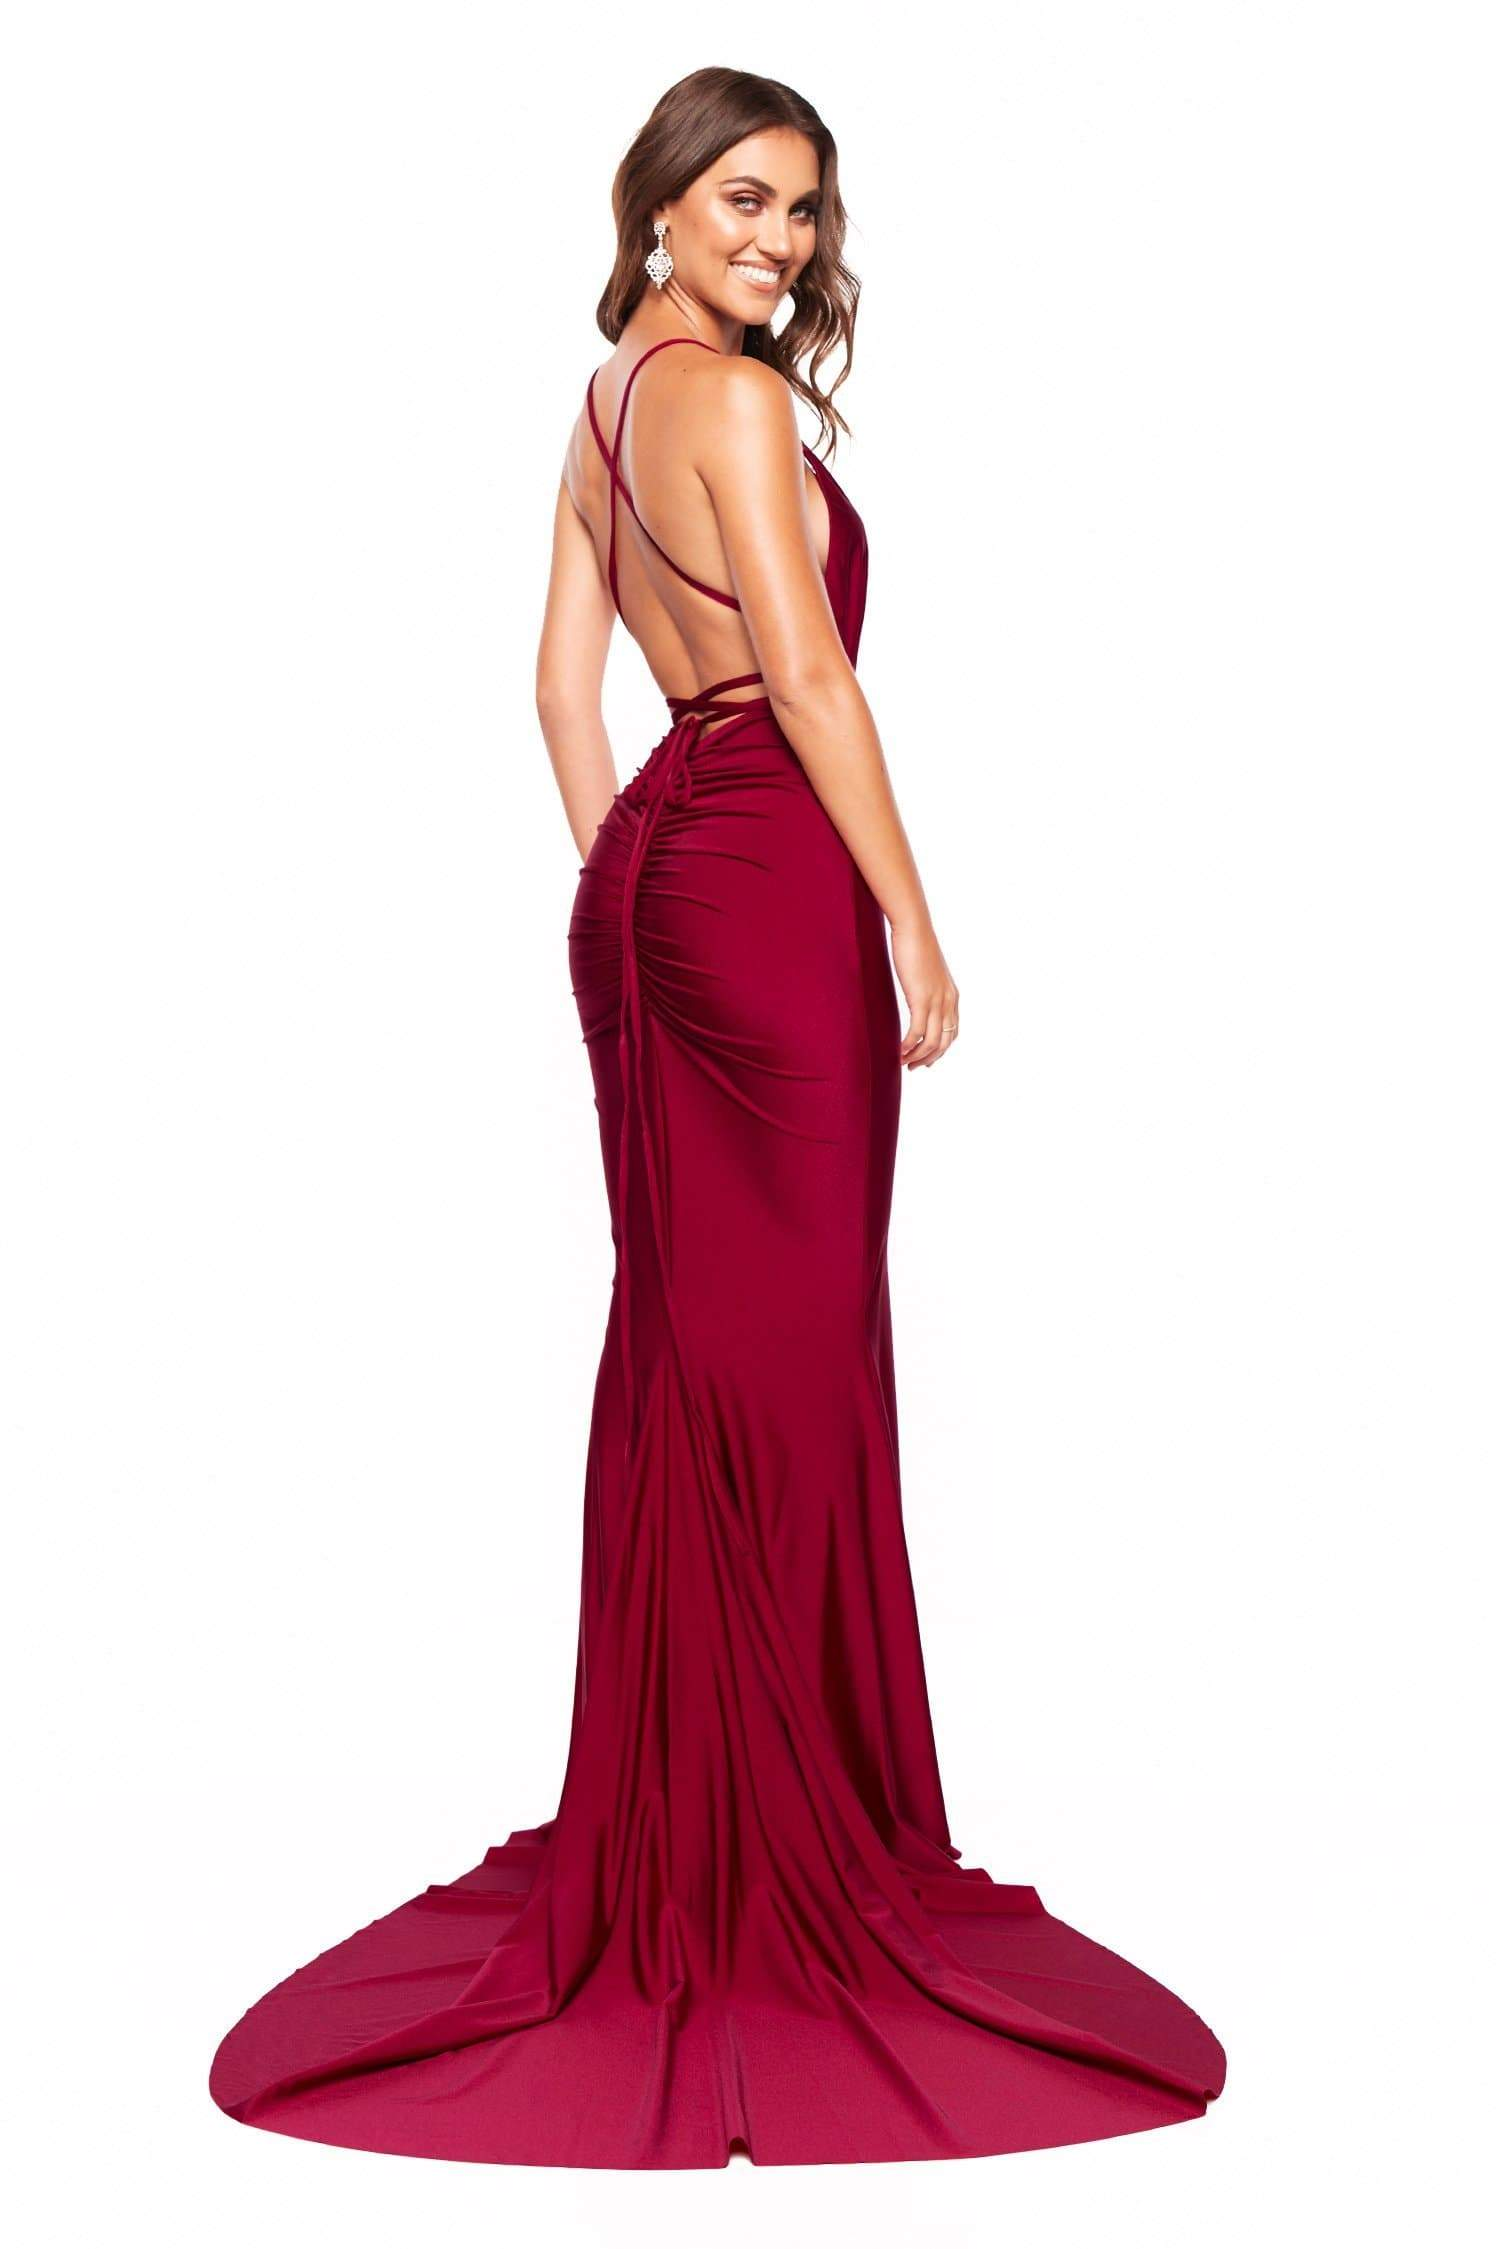 Tierra - Plum Satin Plunge Halterneck Lace-Up Gown with Ruching